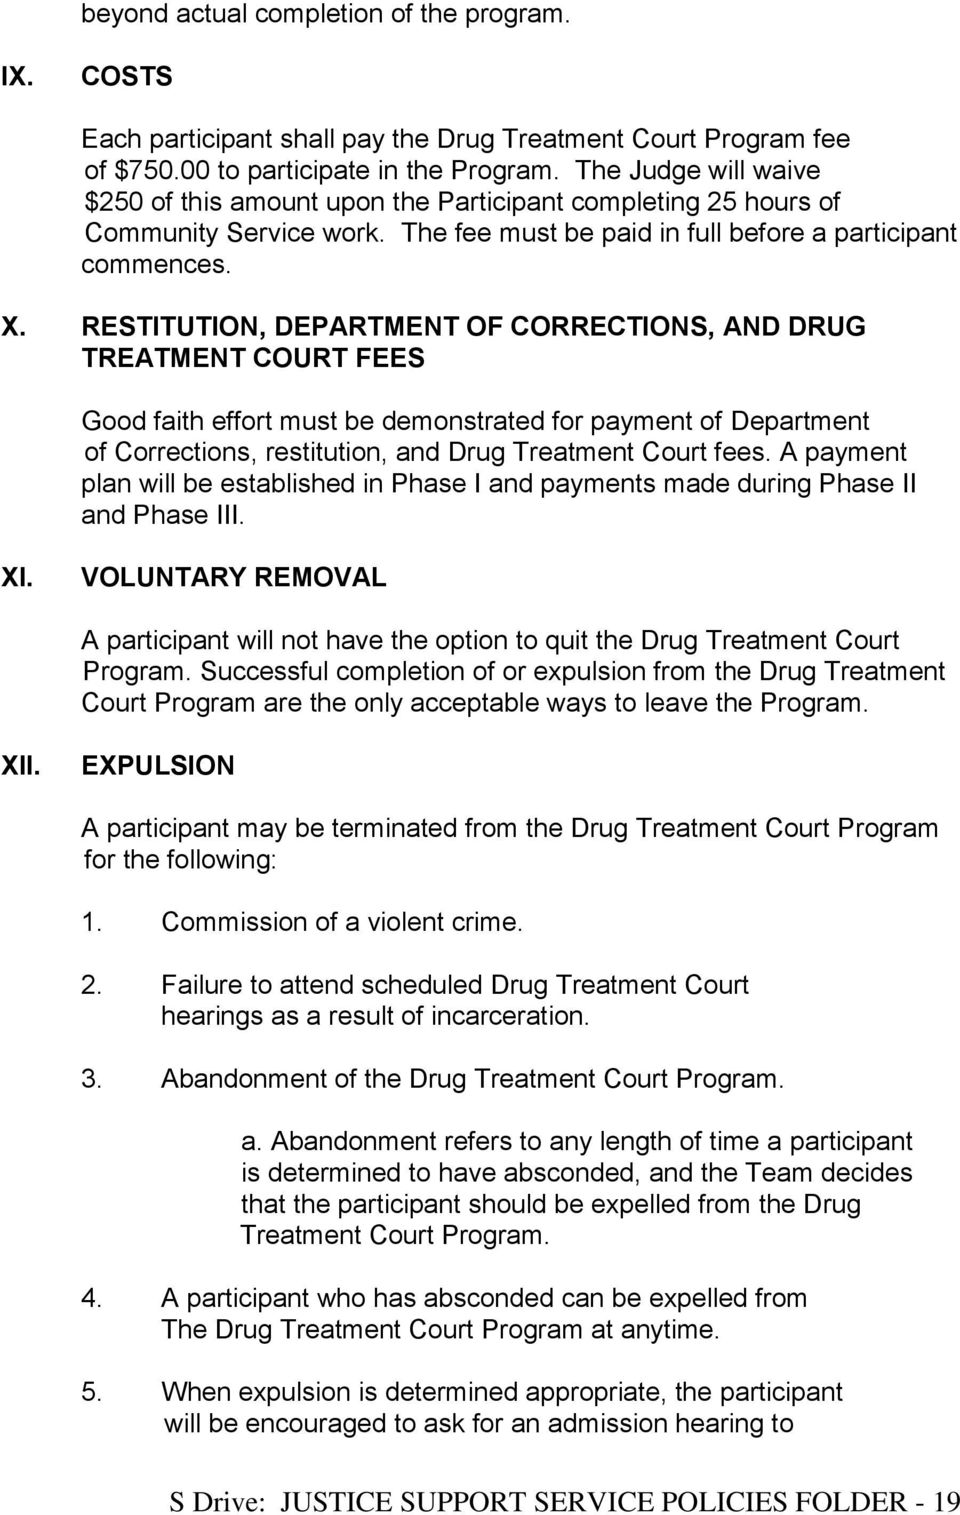 RESTITUTION, DEPARTMENT OF CORRECTIONS, AND DRUG TREATMENT COURT FEES Good faith effort must be demonstrated for payment of Department of Corrections, restitution, and Drug Treatment Court fees.